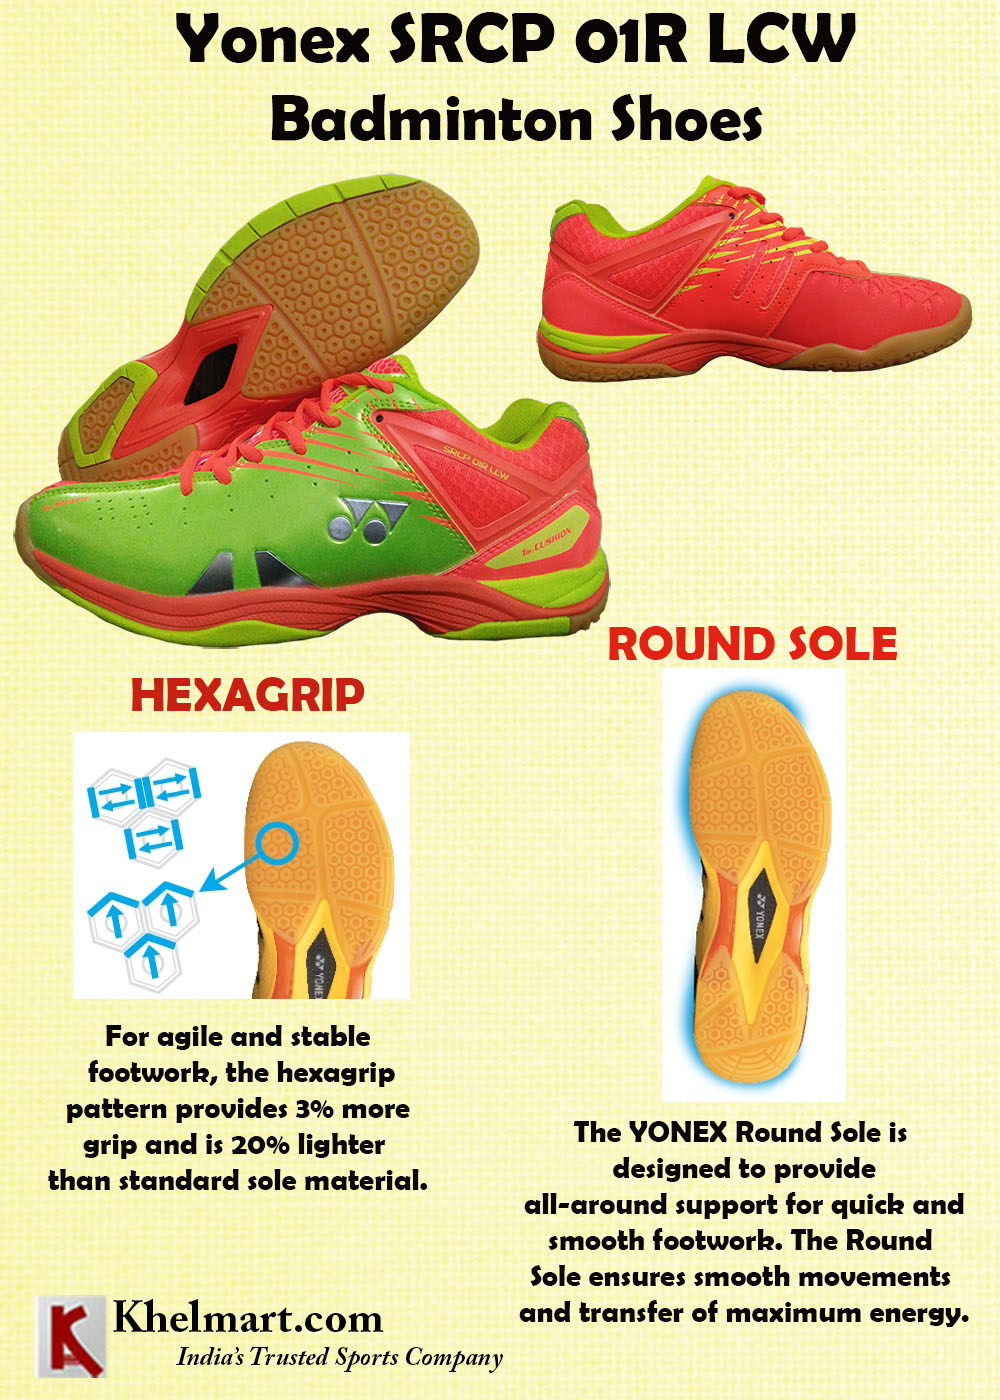 Yonex SRCP 01R LCW Badminton Shoes Orange and Lime Green